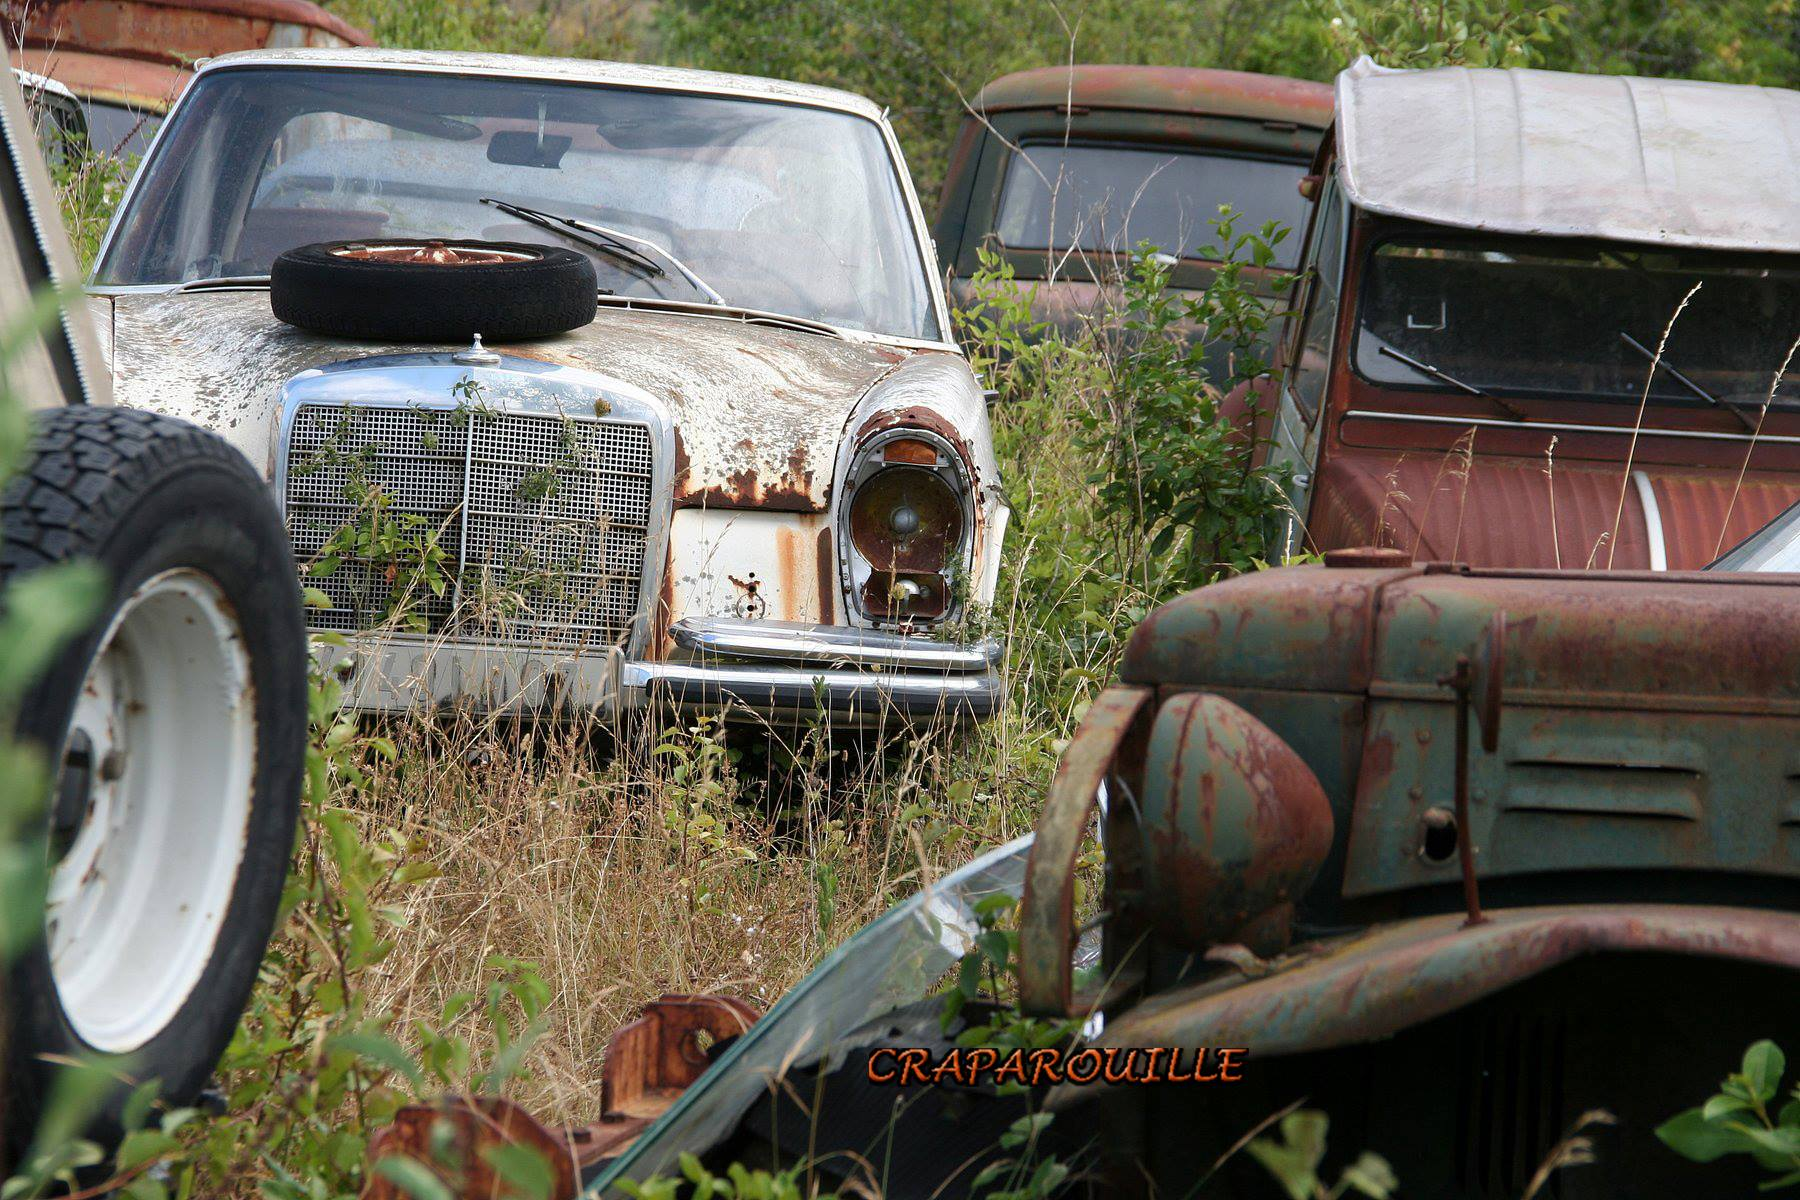 Photography-Diamonds-in-Rust-Craparouille-68